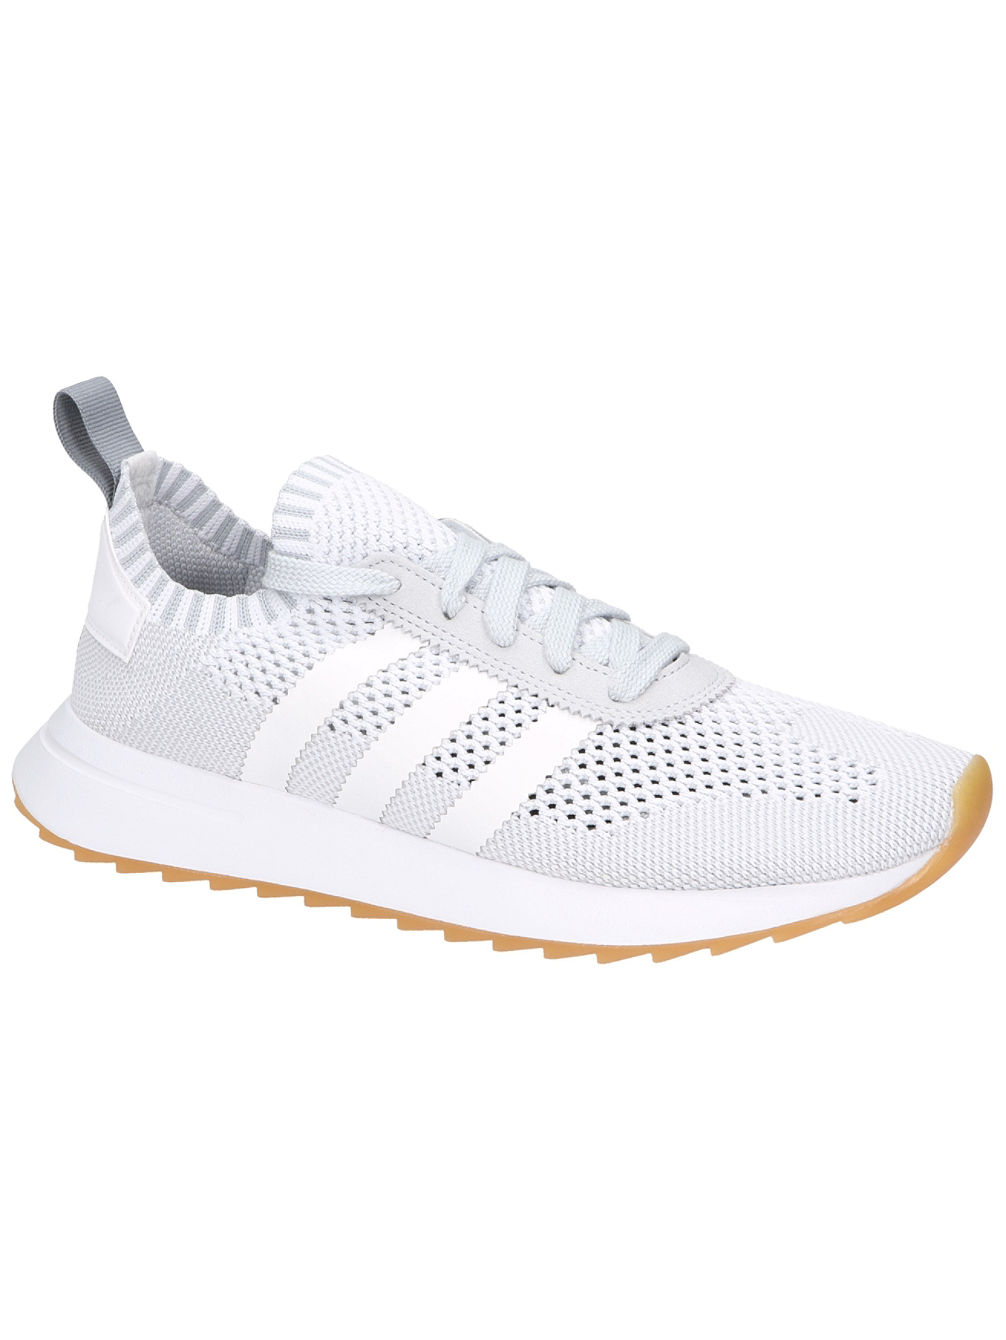 601f75423b5388 Buy adidas Originals FLB W PK Sneakers Women online at blue-tomato.com